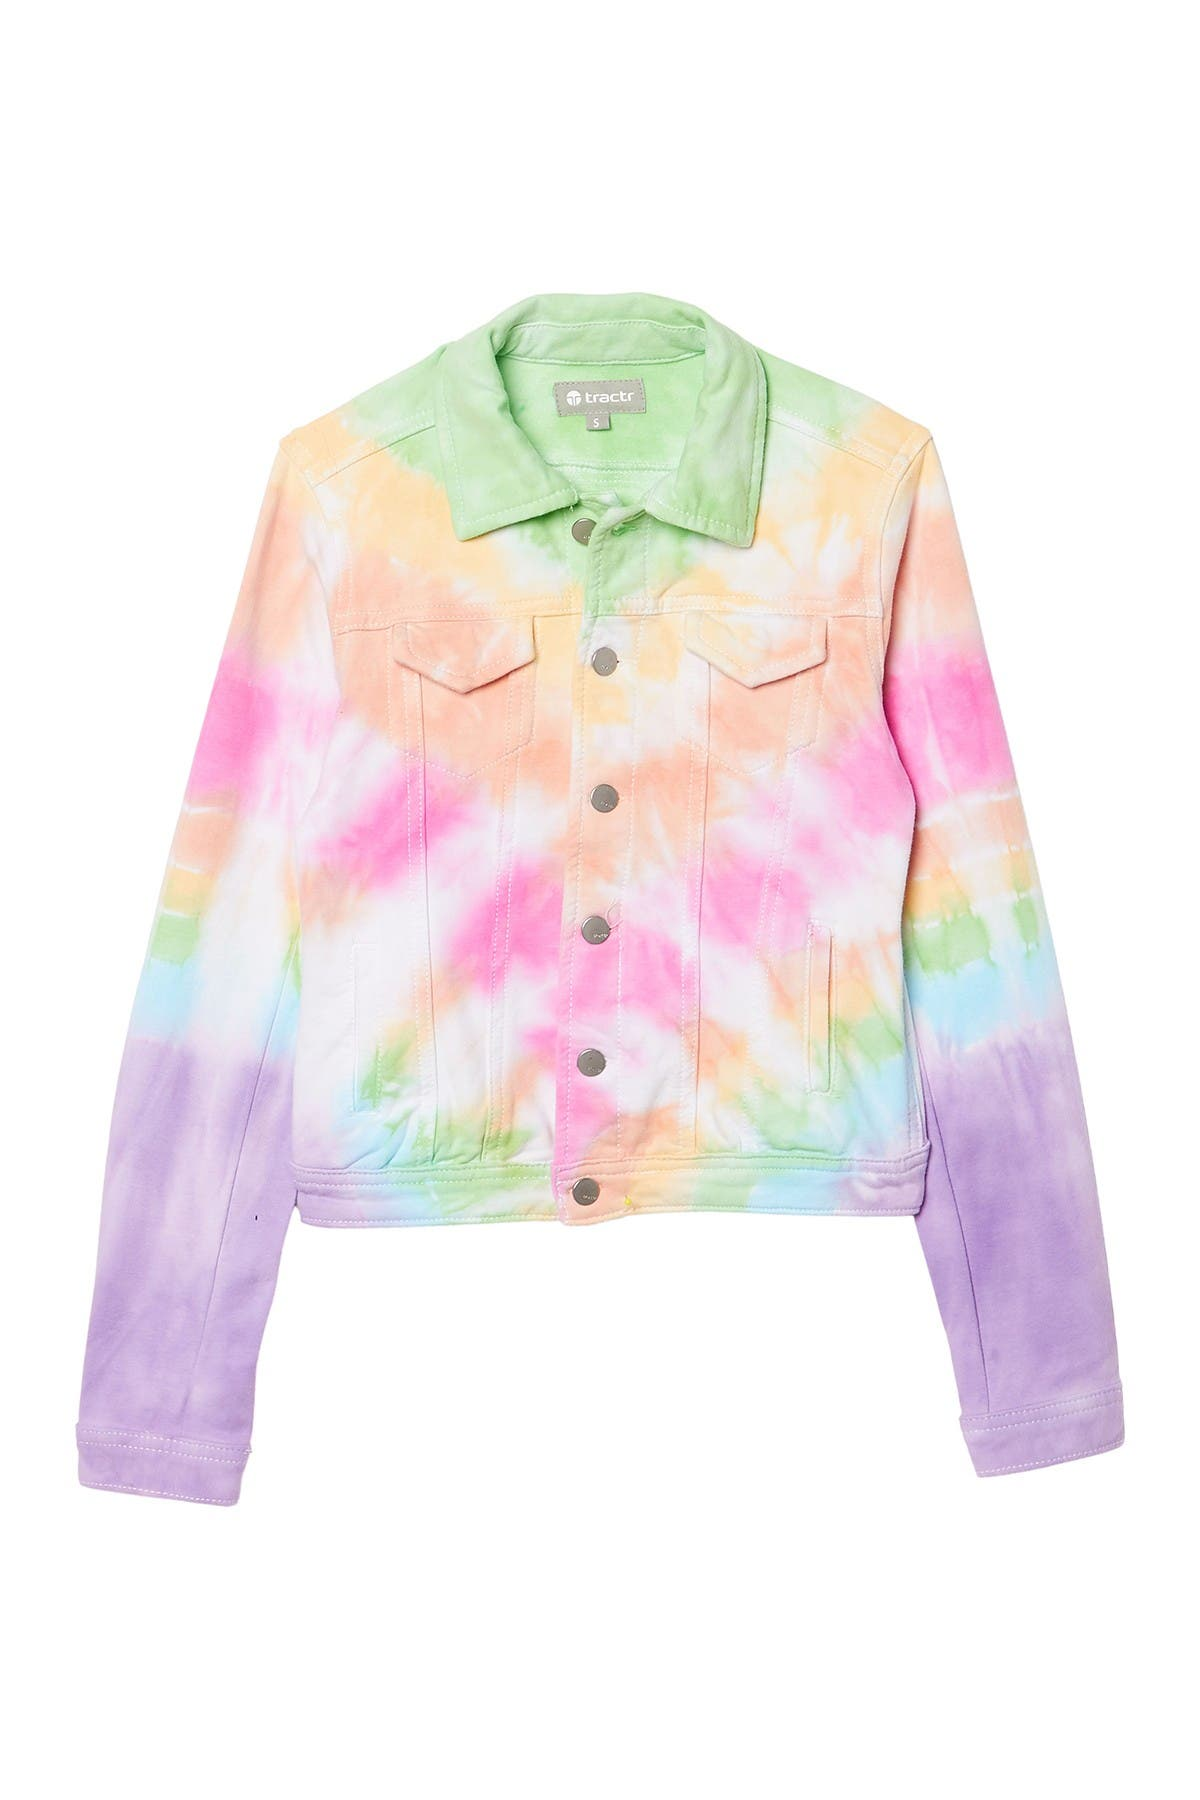 Image of Tractr Denim Tie Dye Jacket